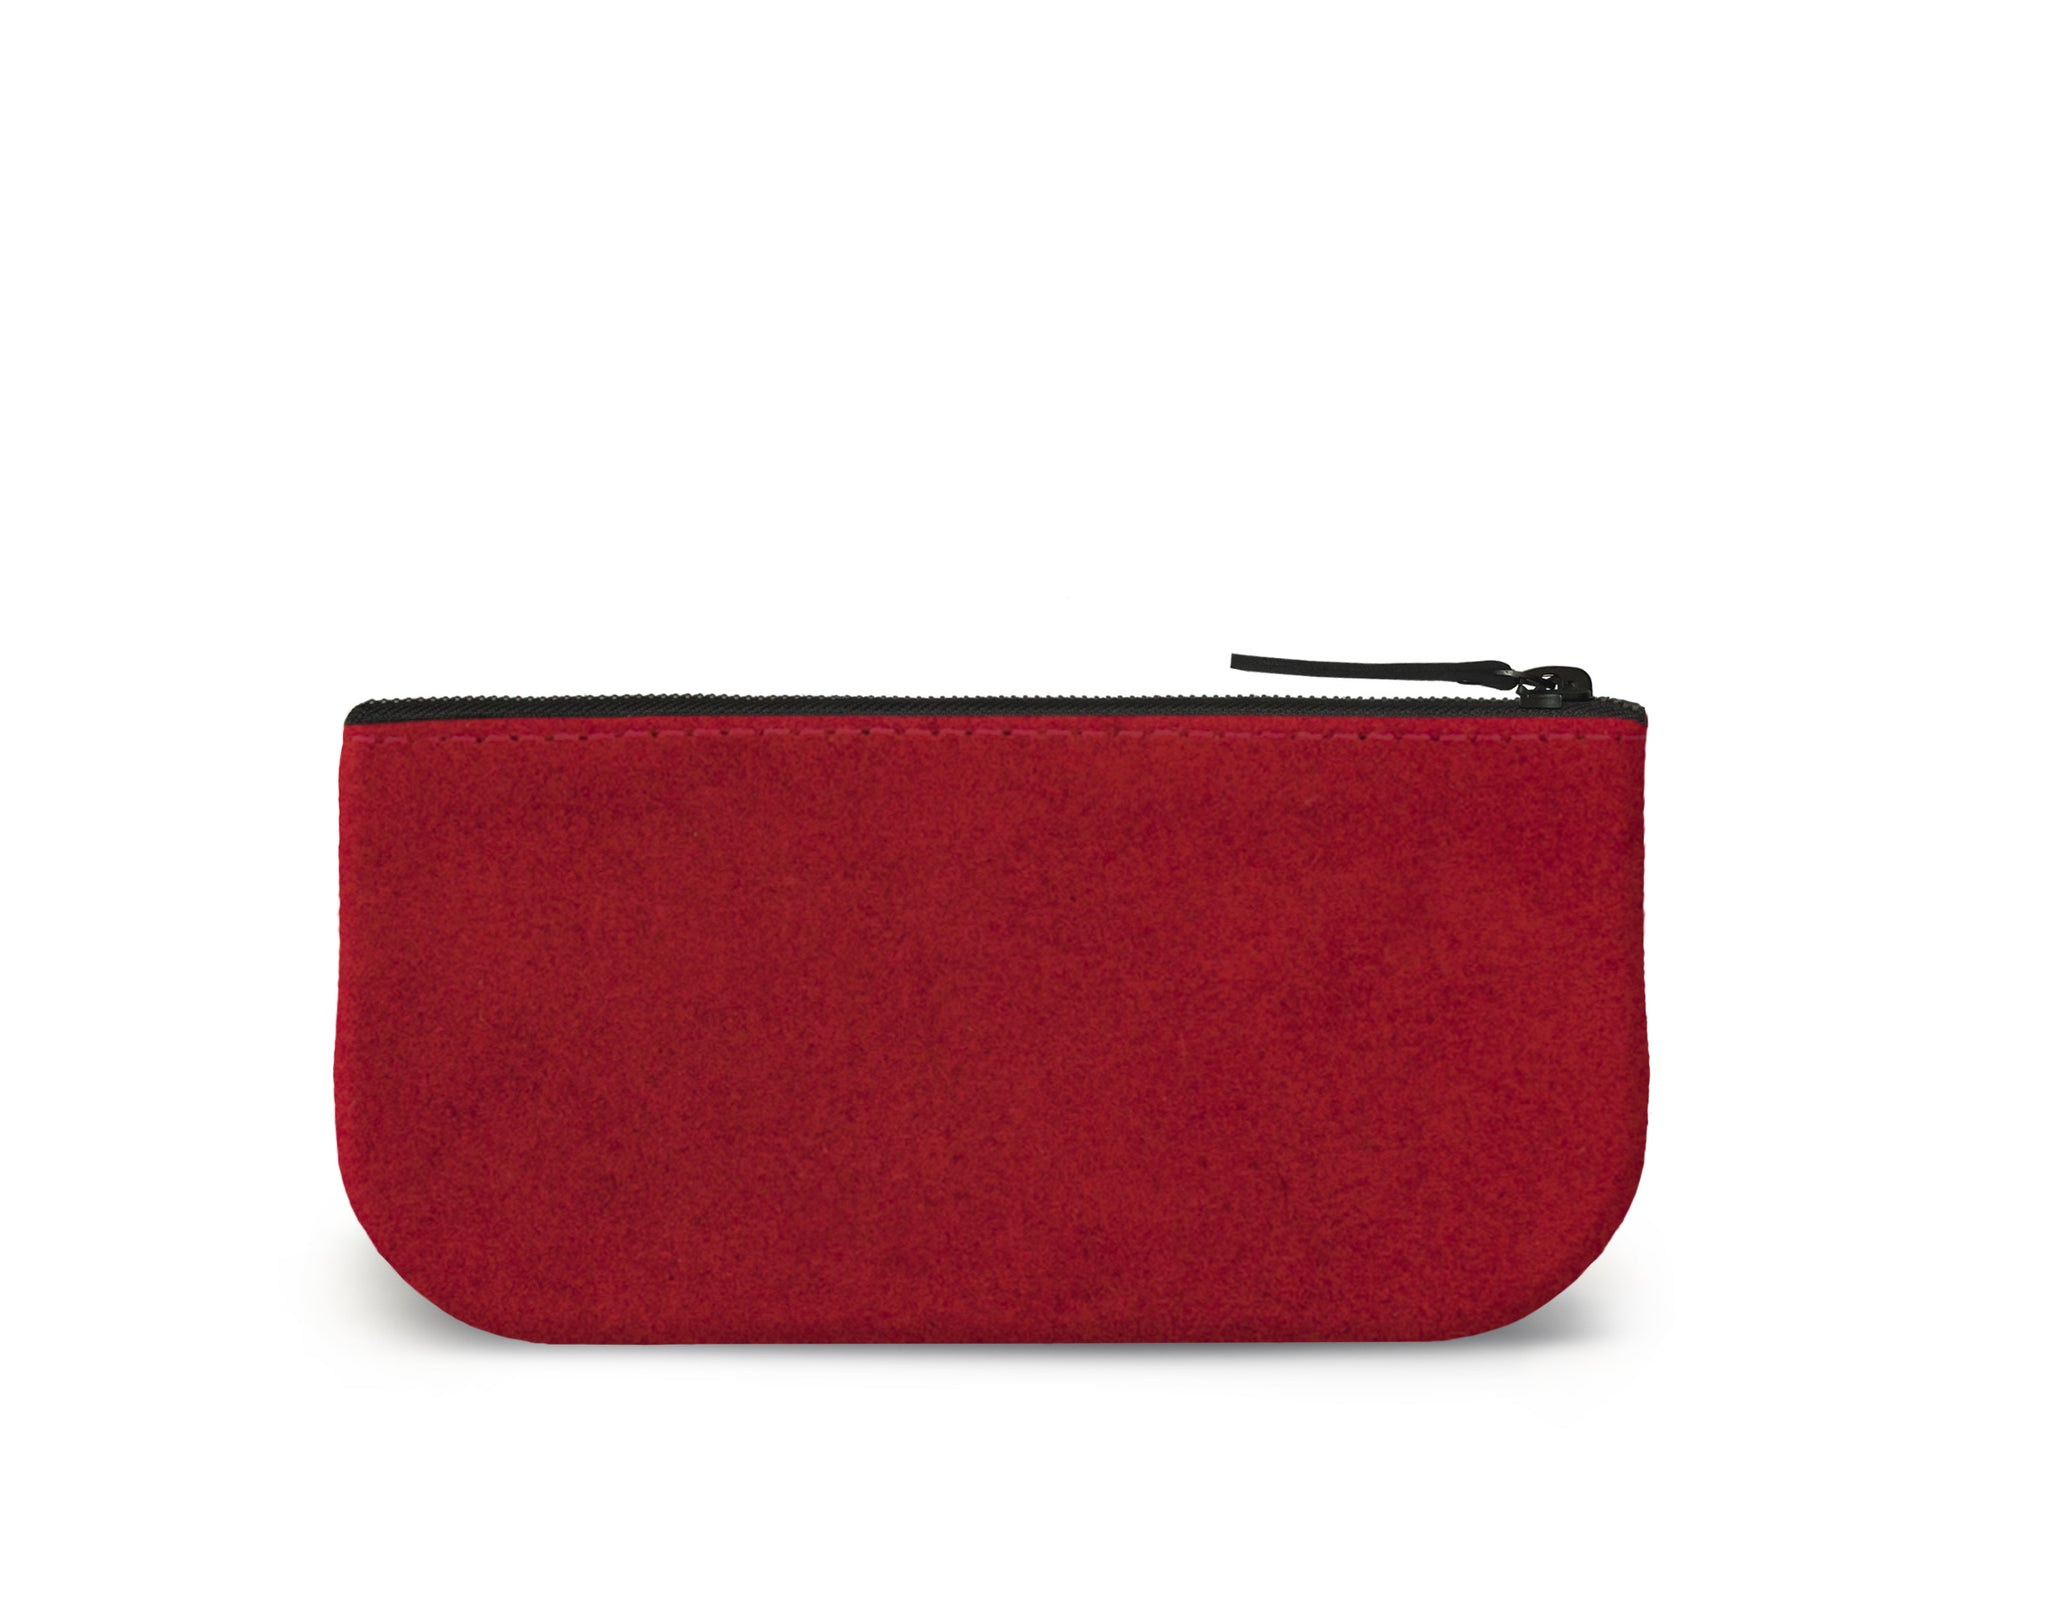 Tartan Plaid Clutch Makeup Bag Red Suede Back View